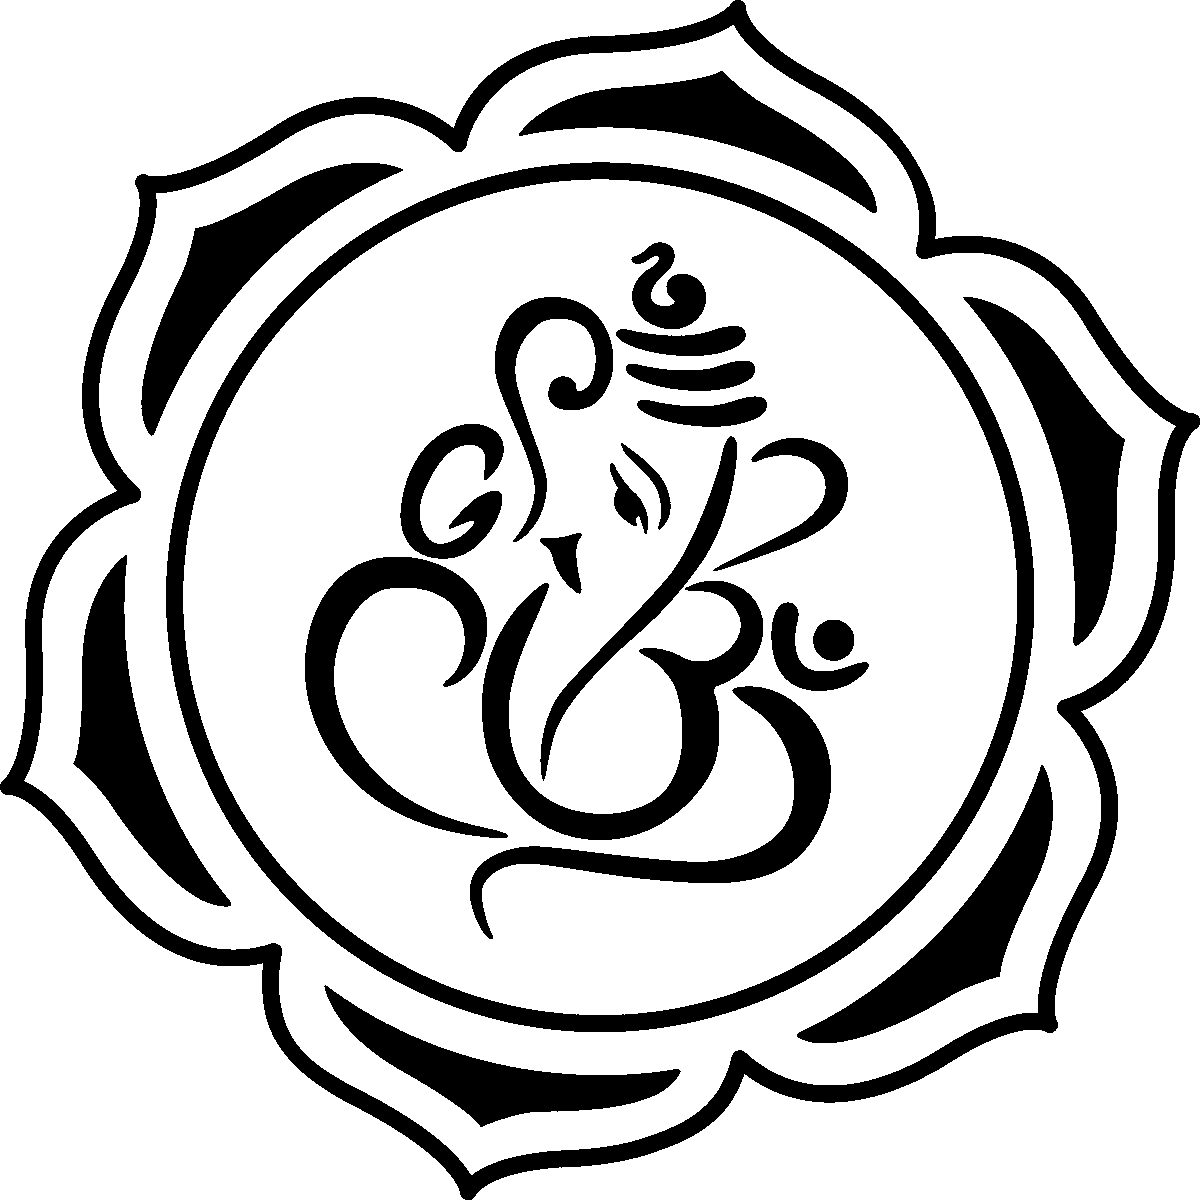 Ganesha Simple Drawing at GetDrawings | Free download